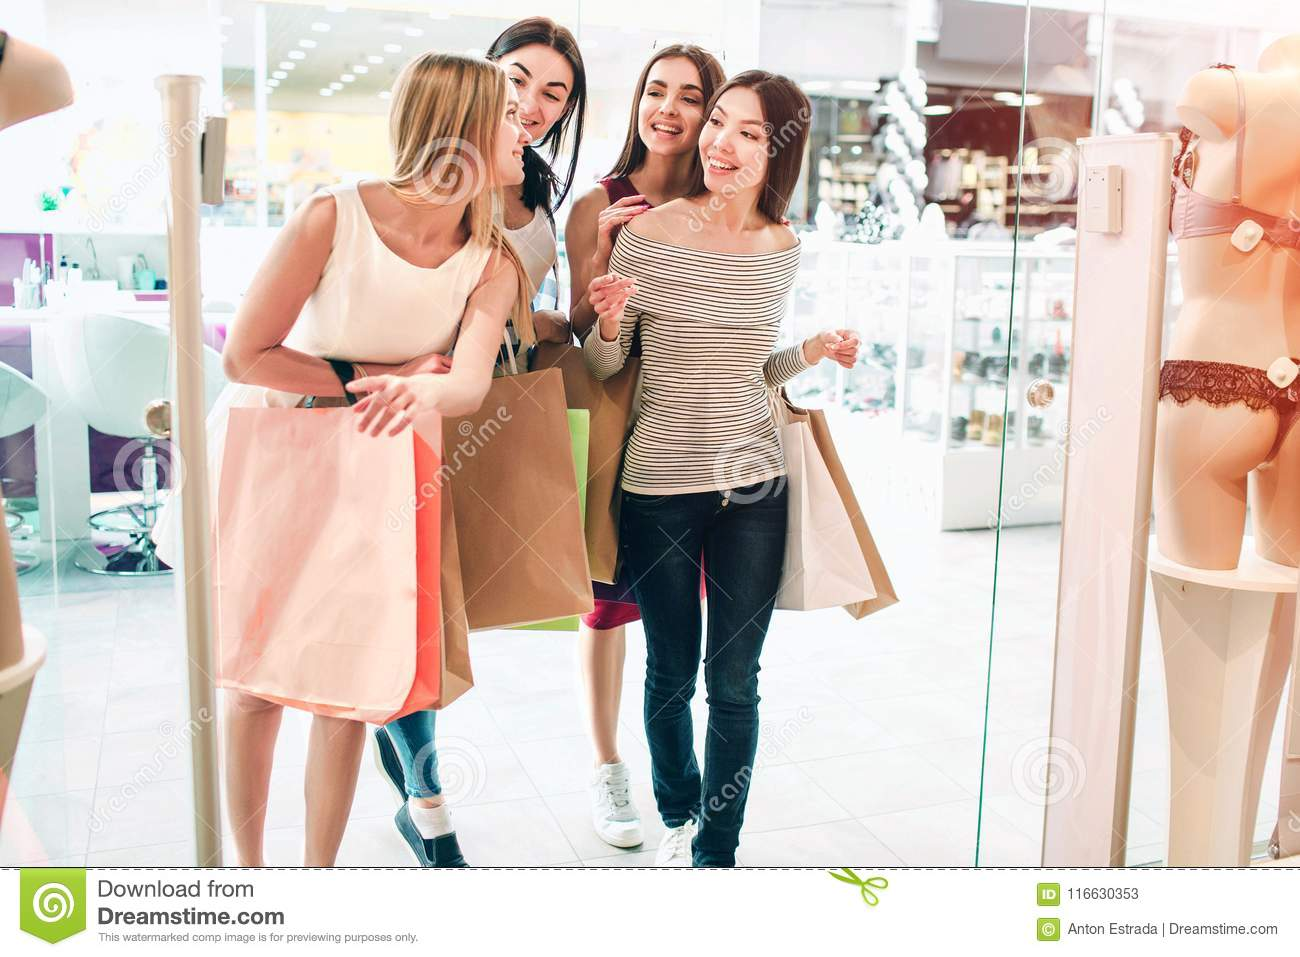 Friends are talking among themselves and walking into lingerie store. They are holding bag. Girls are shopping and